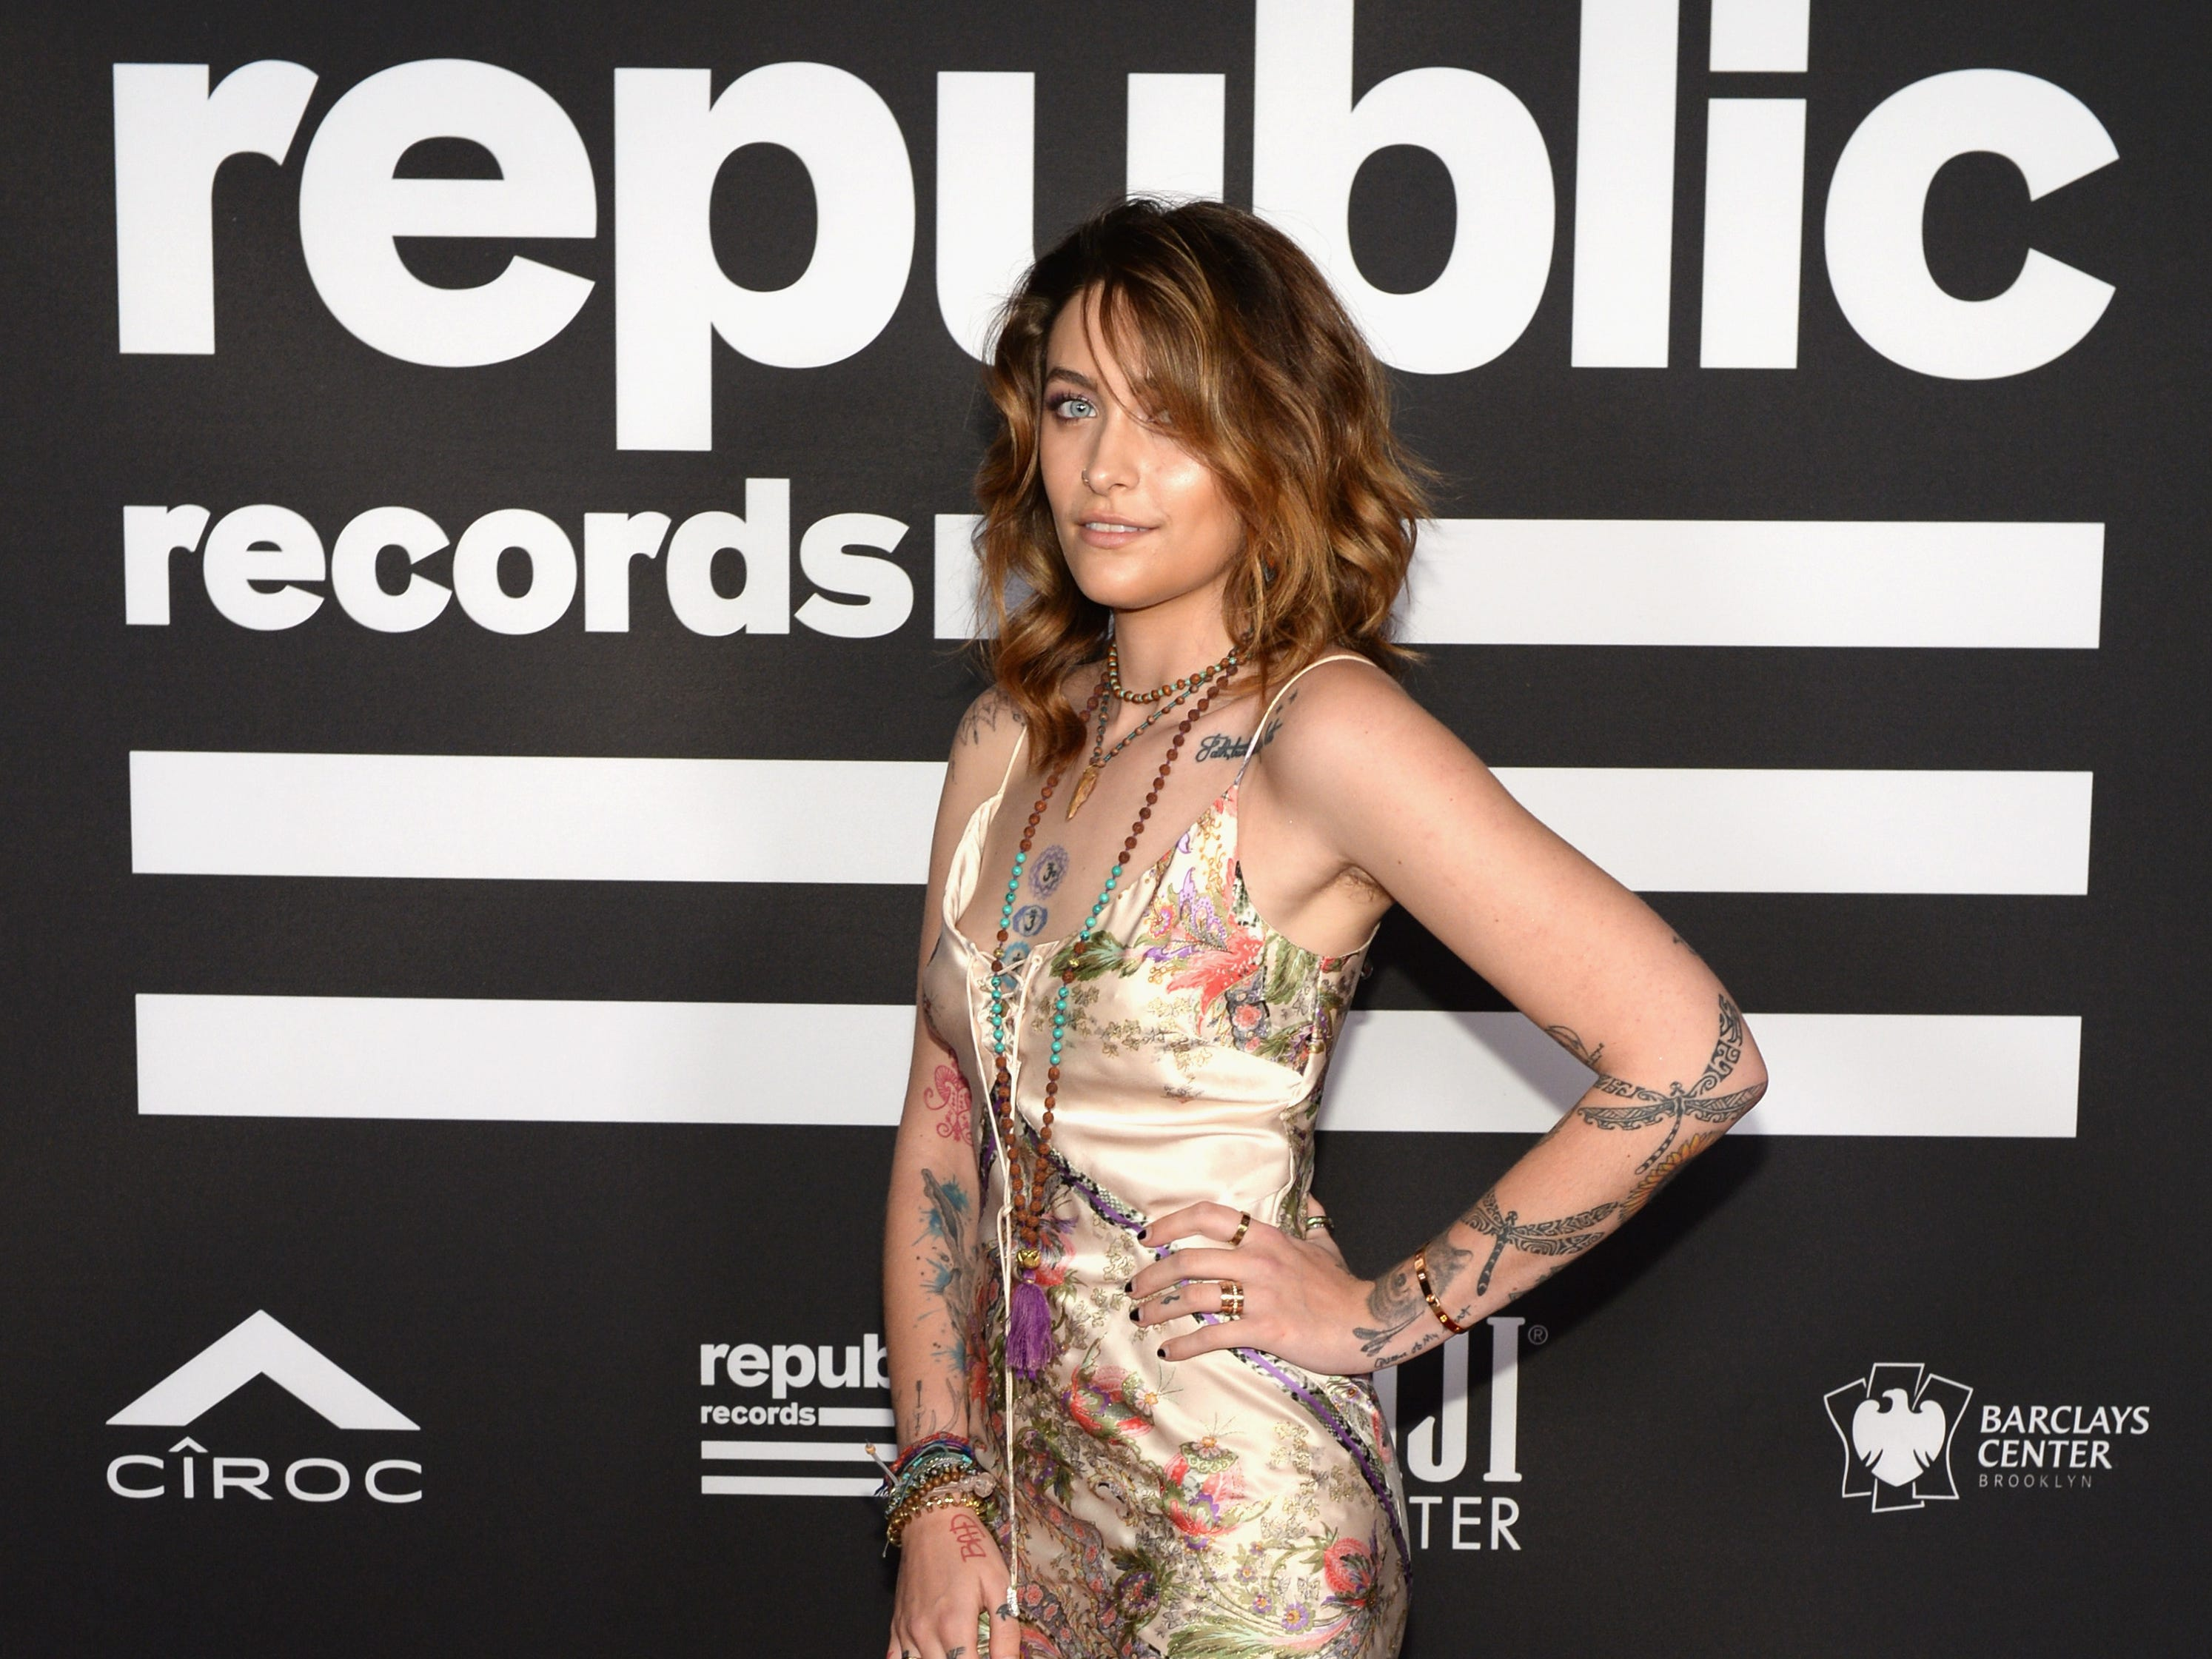 Paris Jackson at the Republic Records Grammy after party on Feb. 10, 2019 in Beverly Hills, Calif.